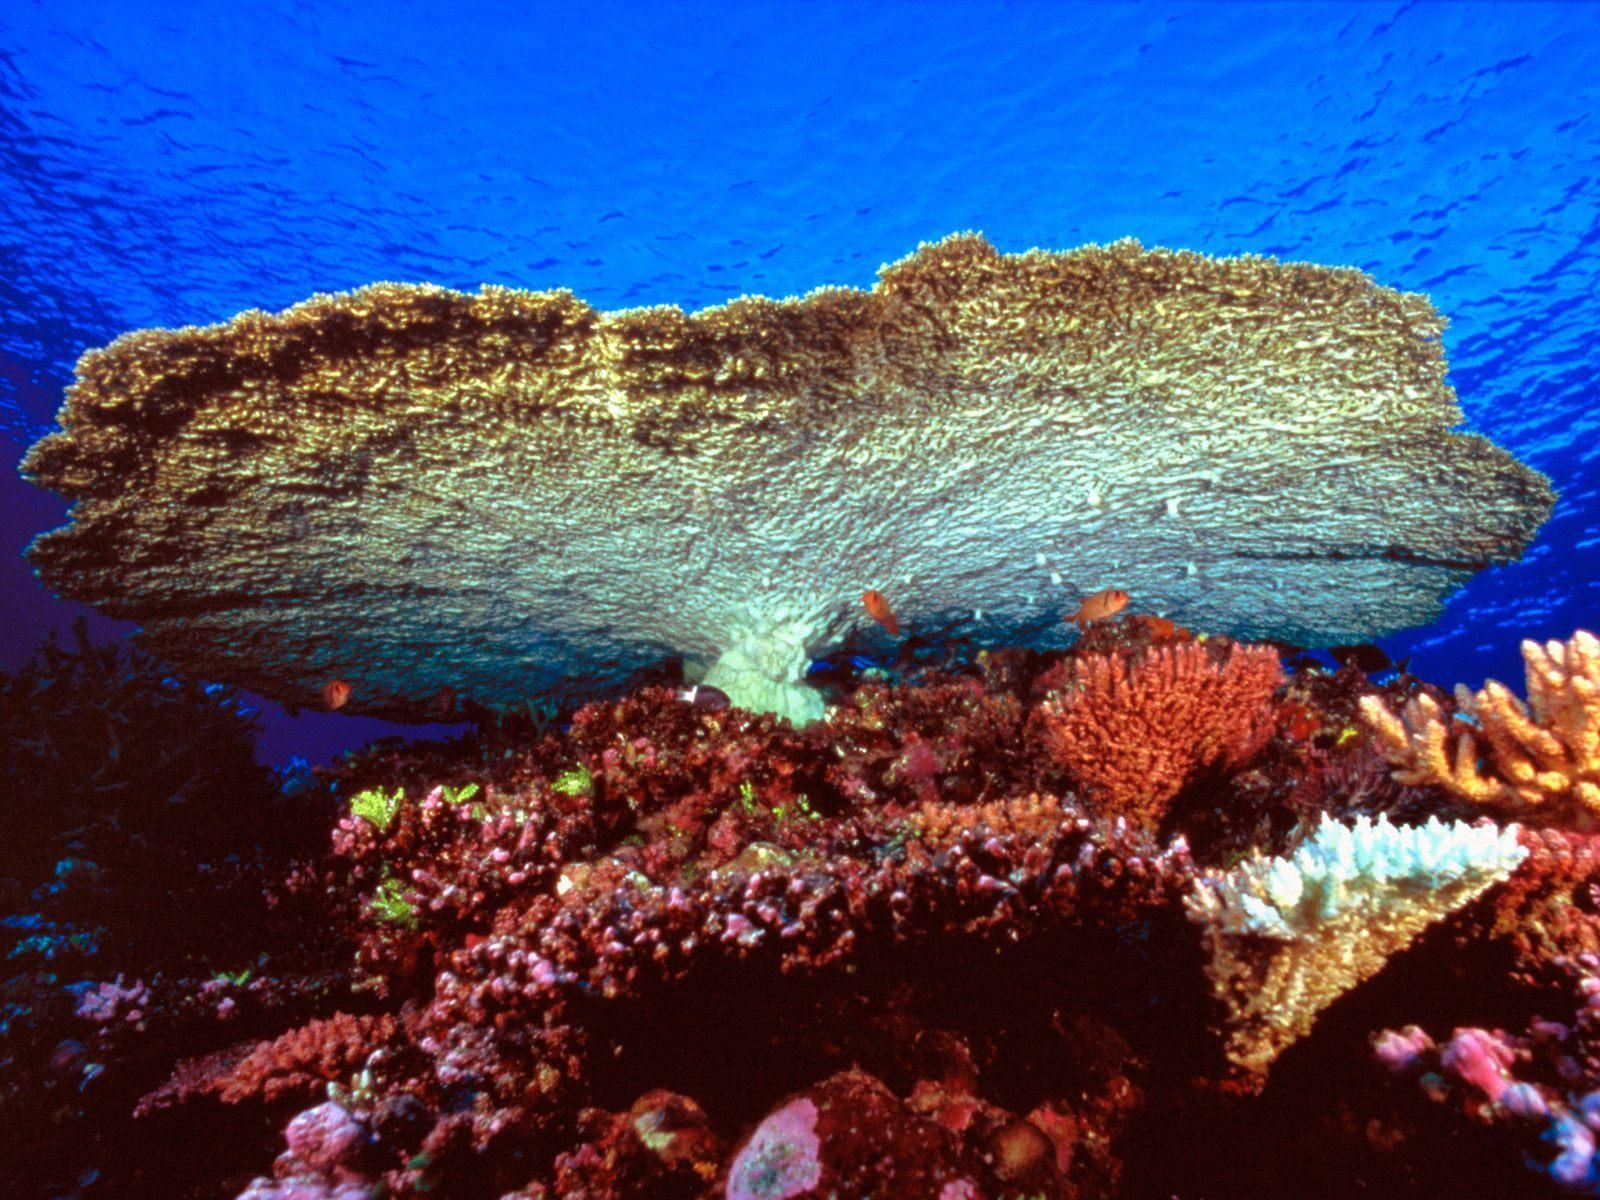 giant table coral.jpg